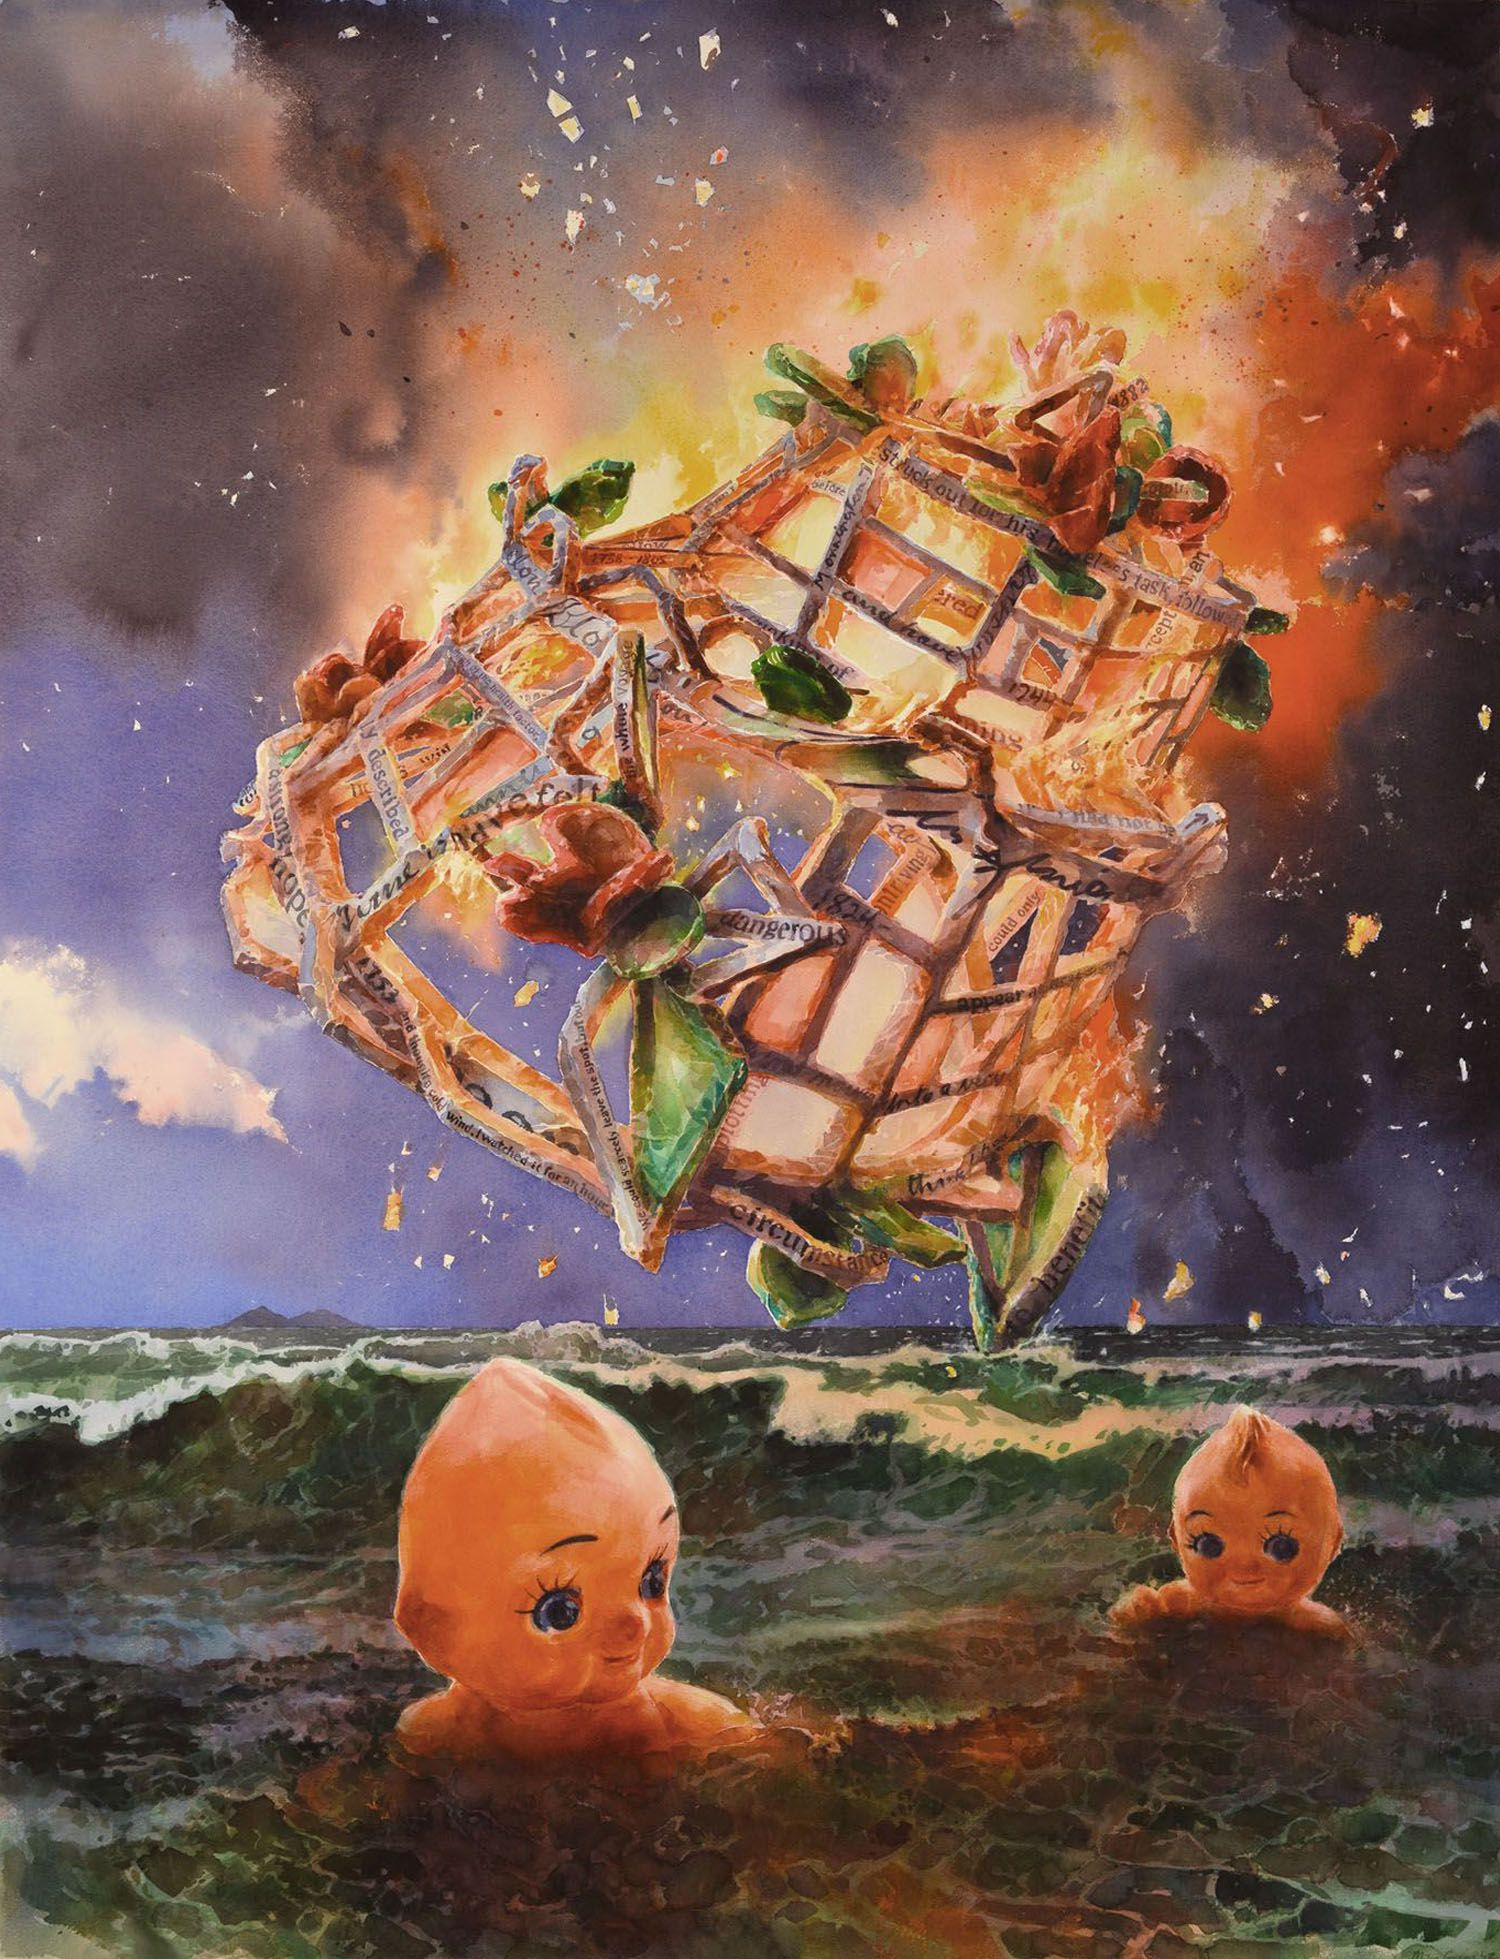 """""""Midnight Swim"""" (The burning of Virginia's Cake"""" 2012. watercolour on 300gms Arches paper. 170 x 128 cm"""